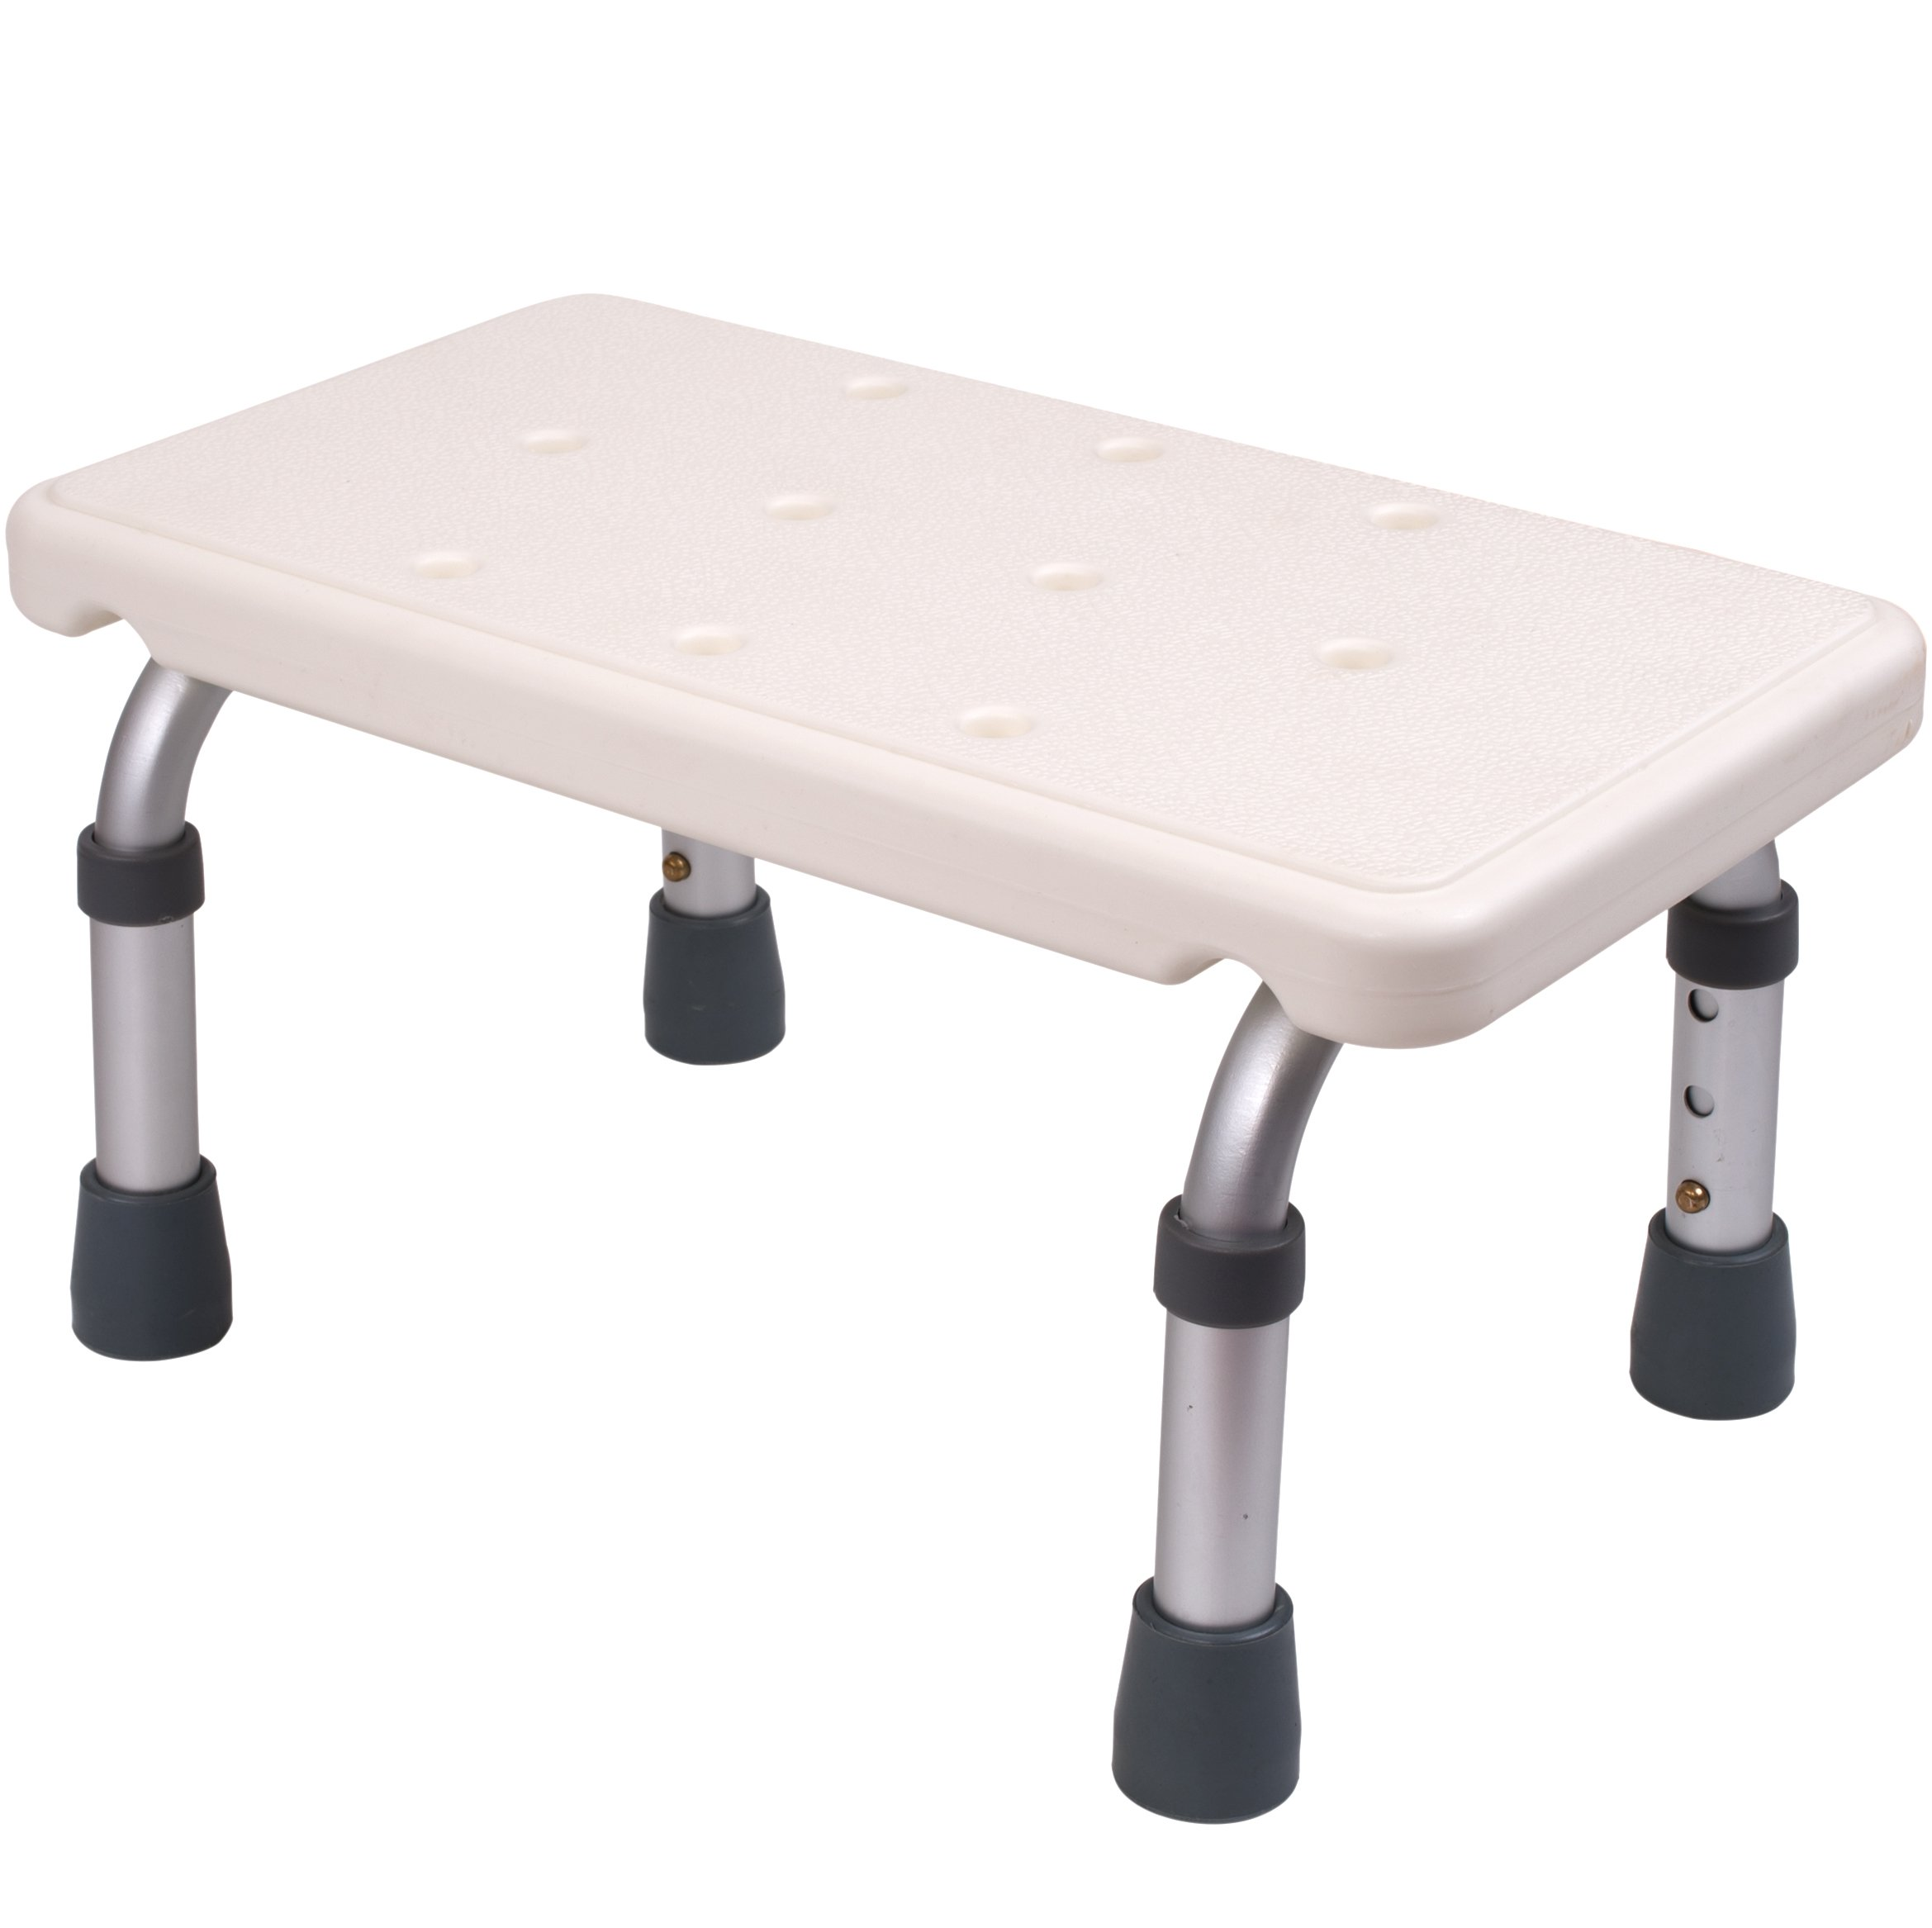 Medokare Adjustable Foot Stool - Stepping Stool for Adults and Children, Bedside High Bed Step for Seniors, Foot Stool Under Desk, Heavy Duty Portable Medical Footstool for Bath Or Kitchen Foot Step by Medokare